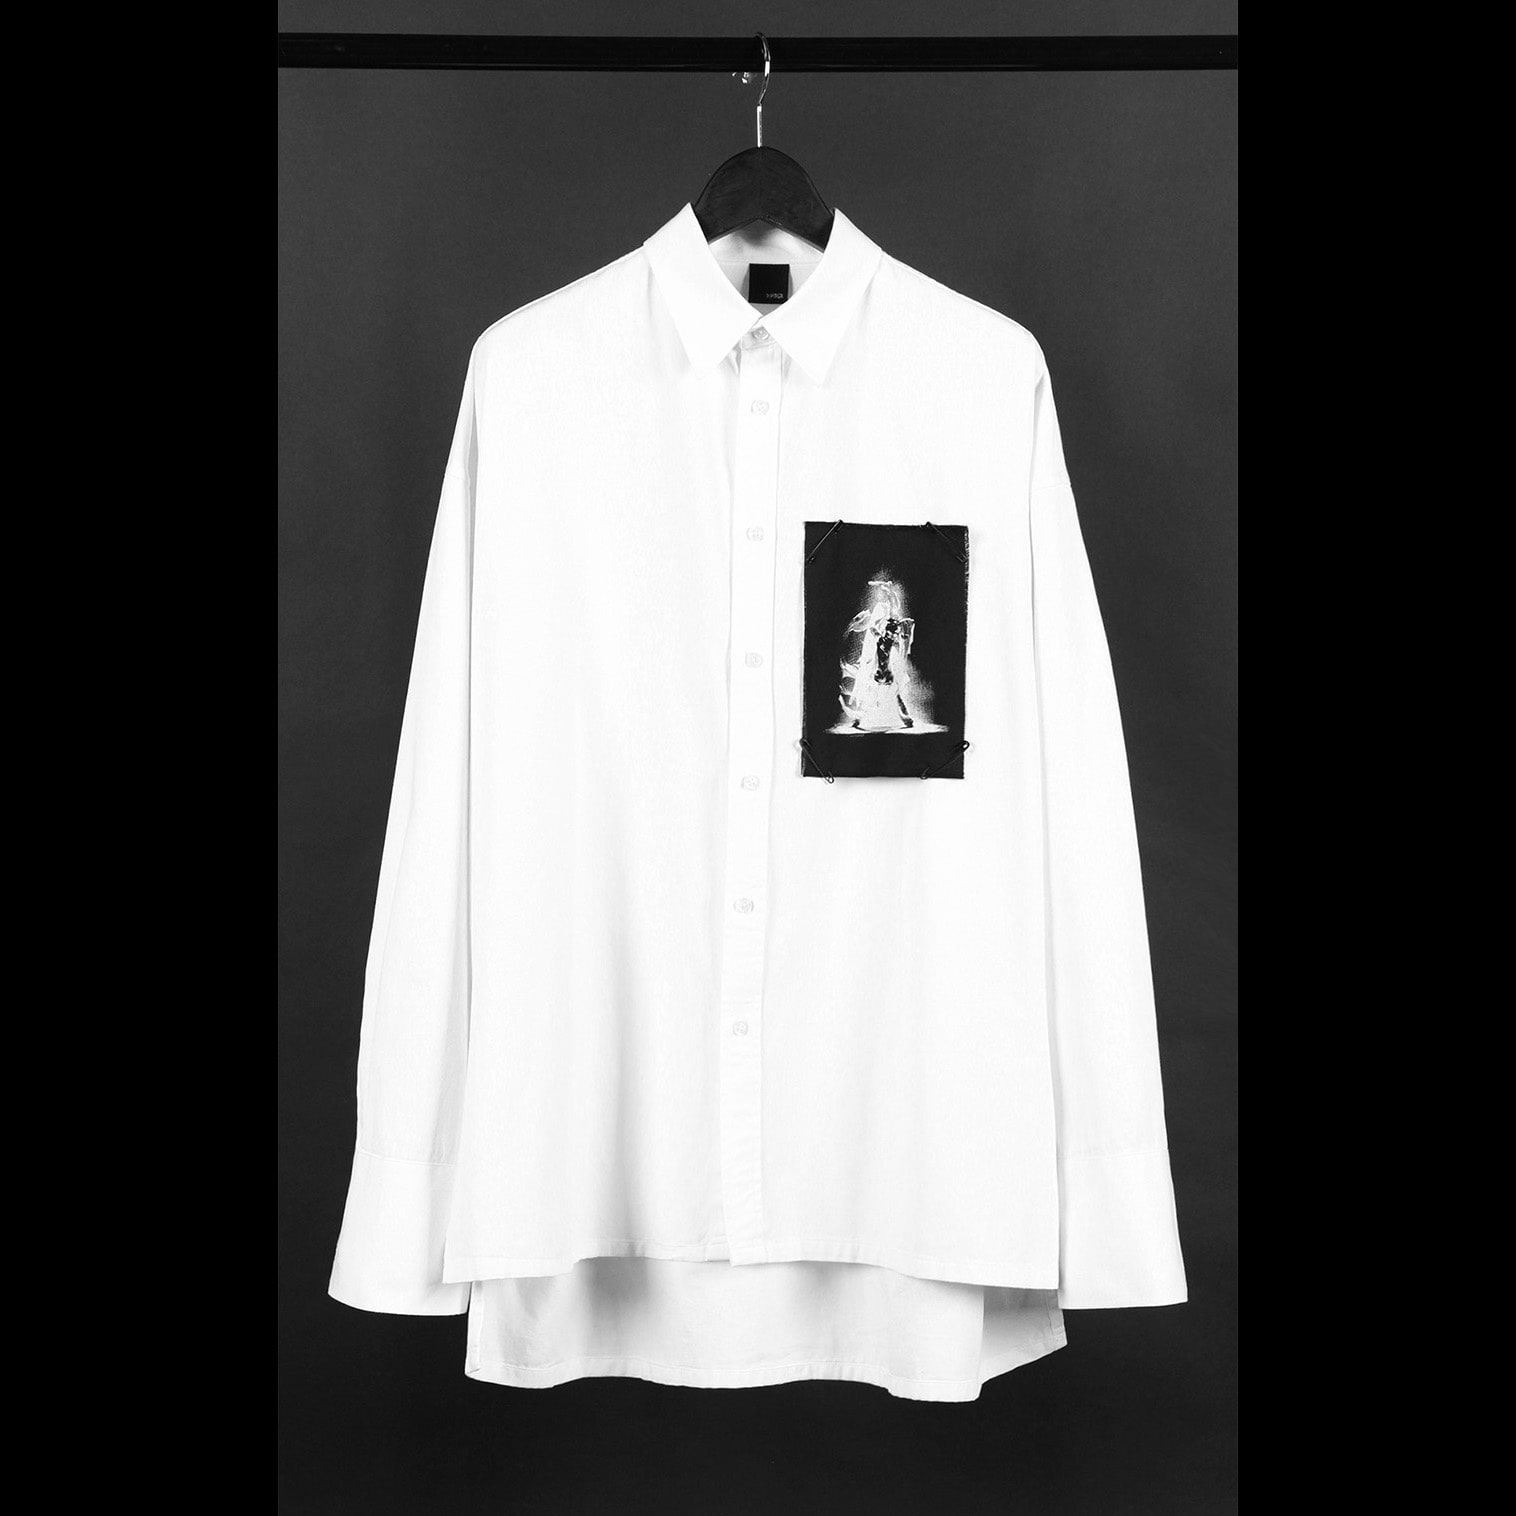 [디베르그]Asura Patch Shirts [Oversized]